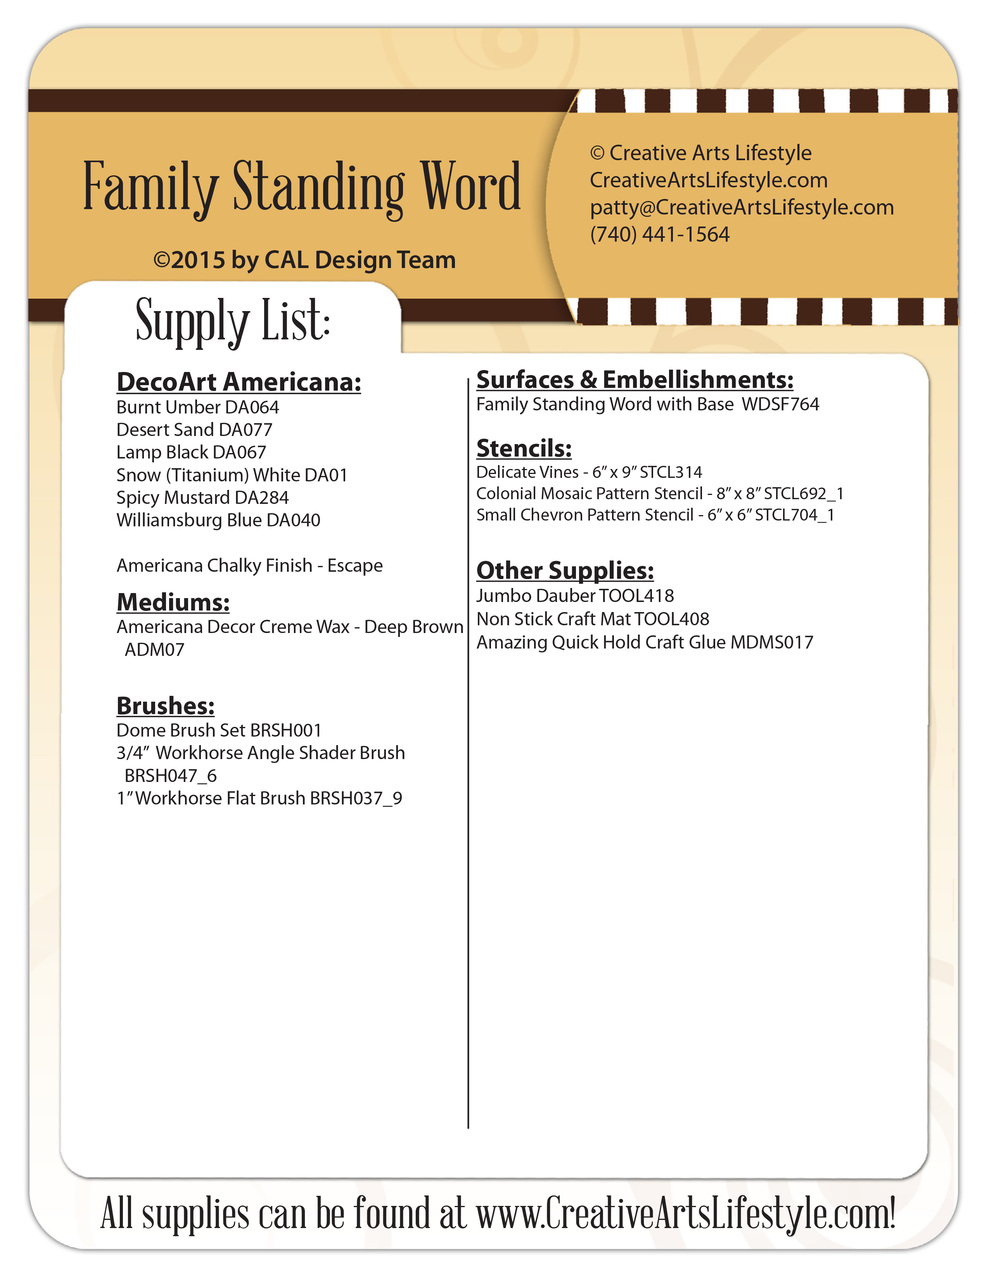 Family Standing Word Pattern Packet - Patricia Rawlinson